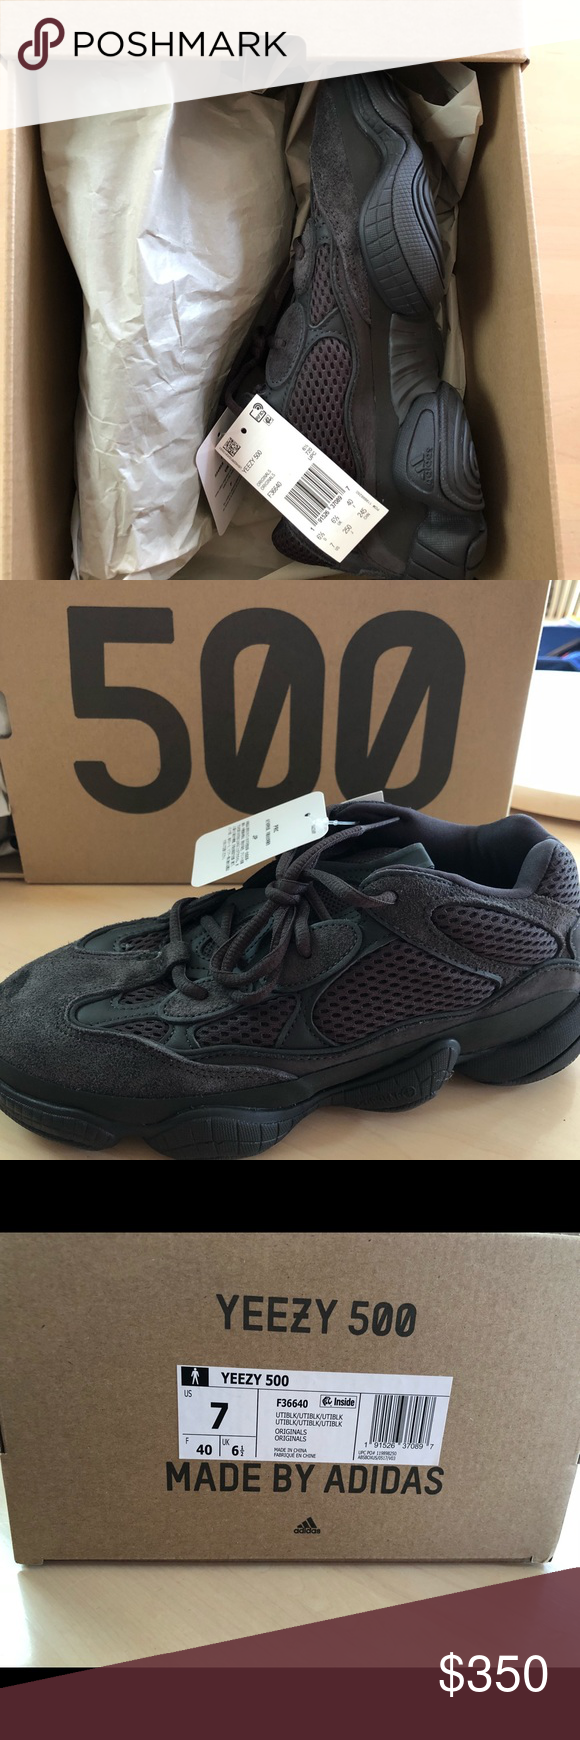 e0aff3dff49 Yeezy 500 Utility Black Size 7 men s women s 8 Size 7 men s. Brand new.  Yeezy Shoes Sneakers